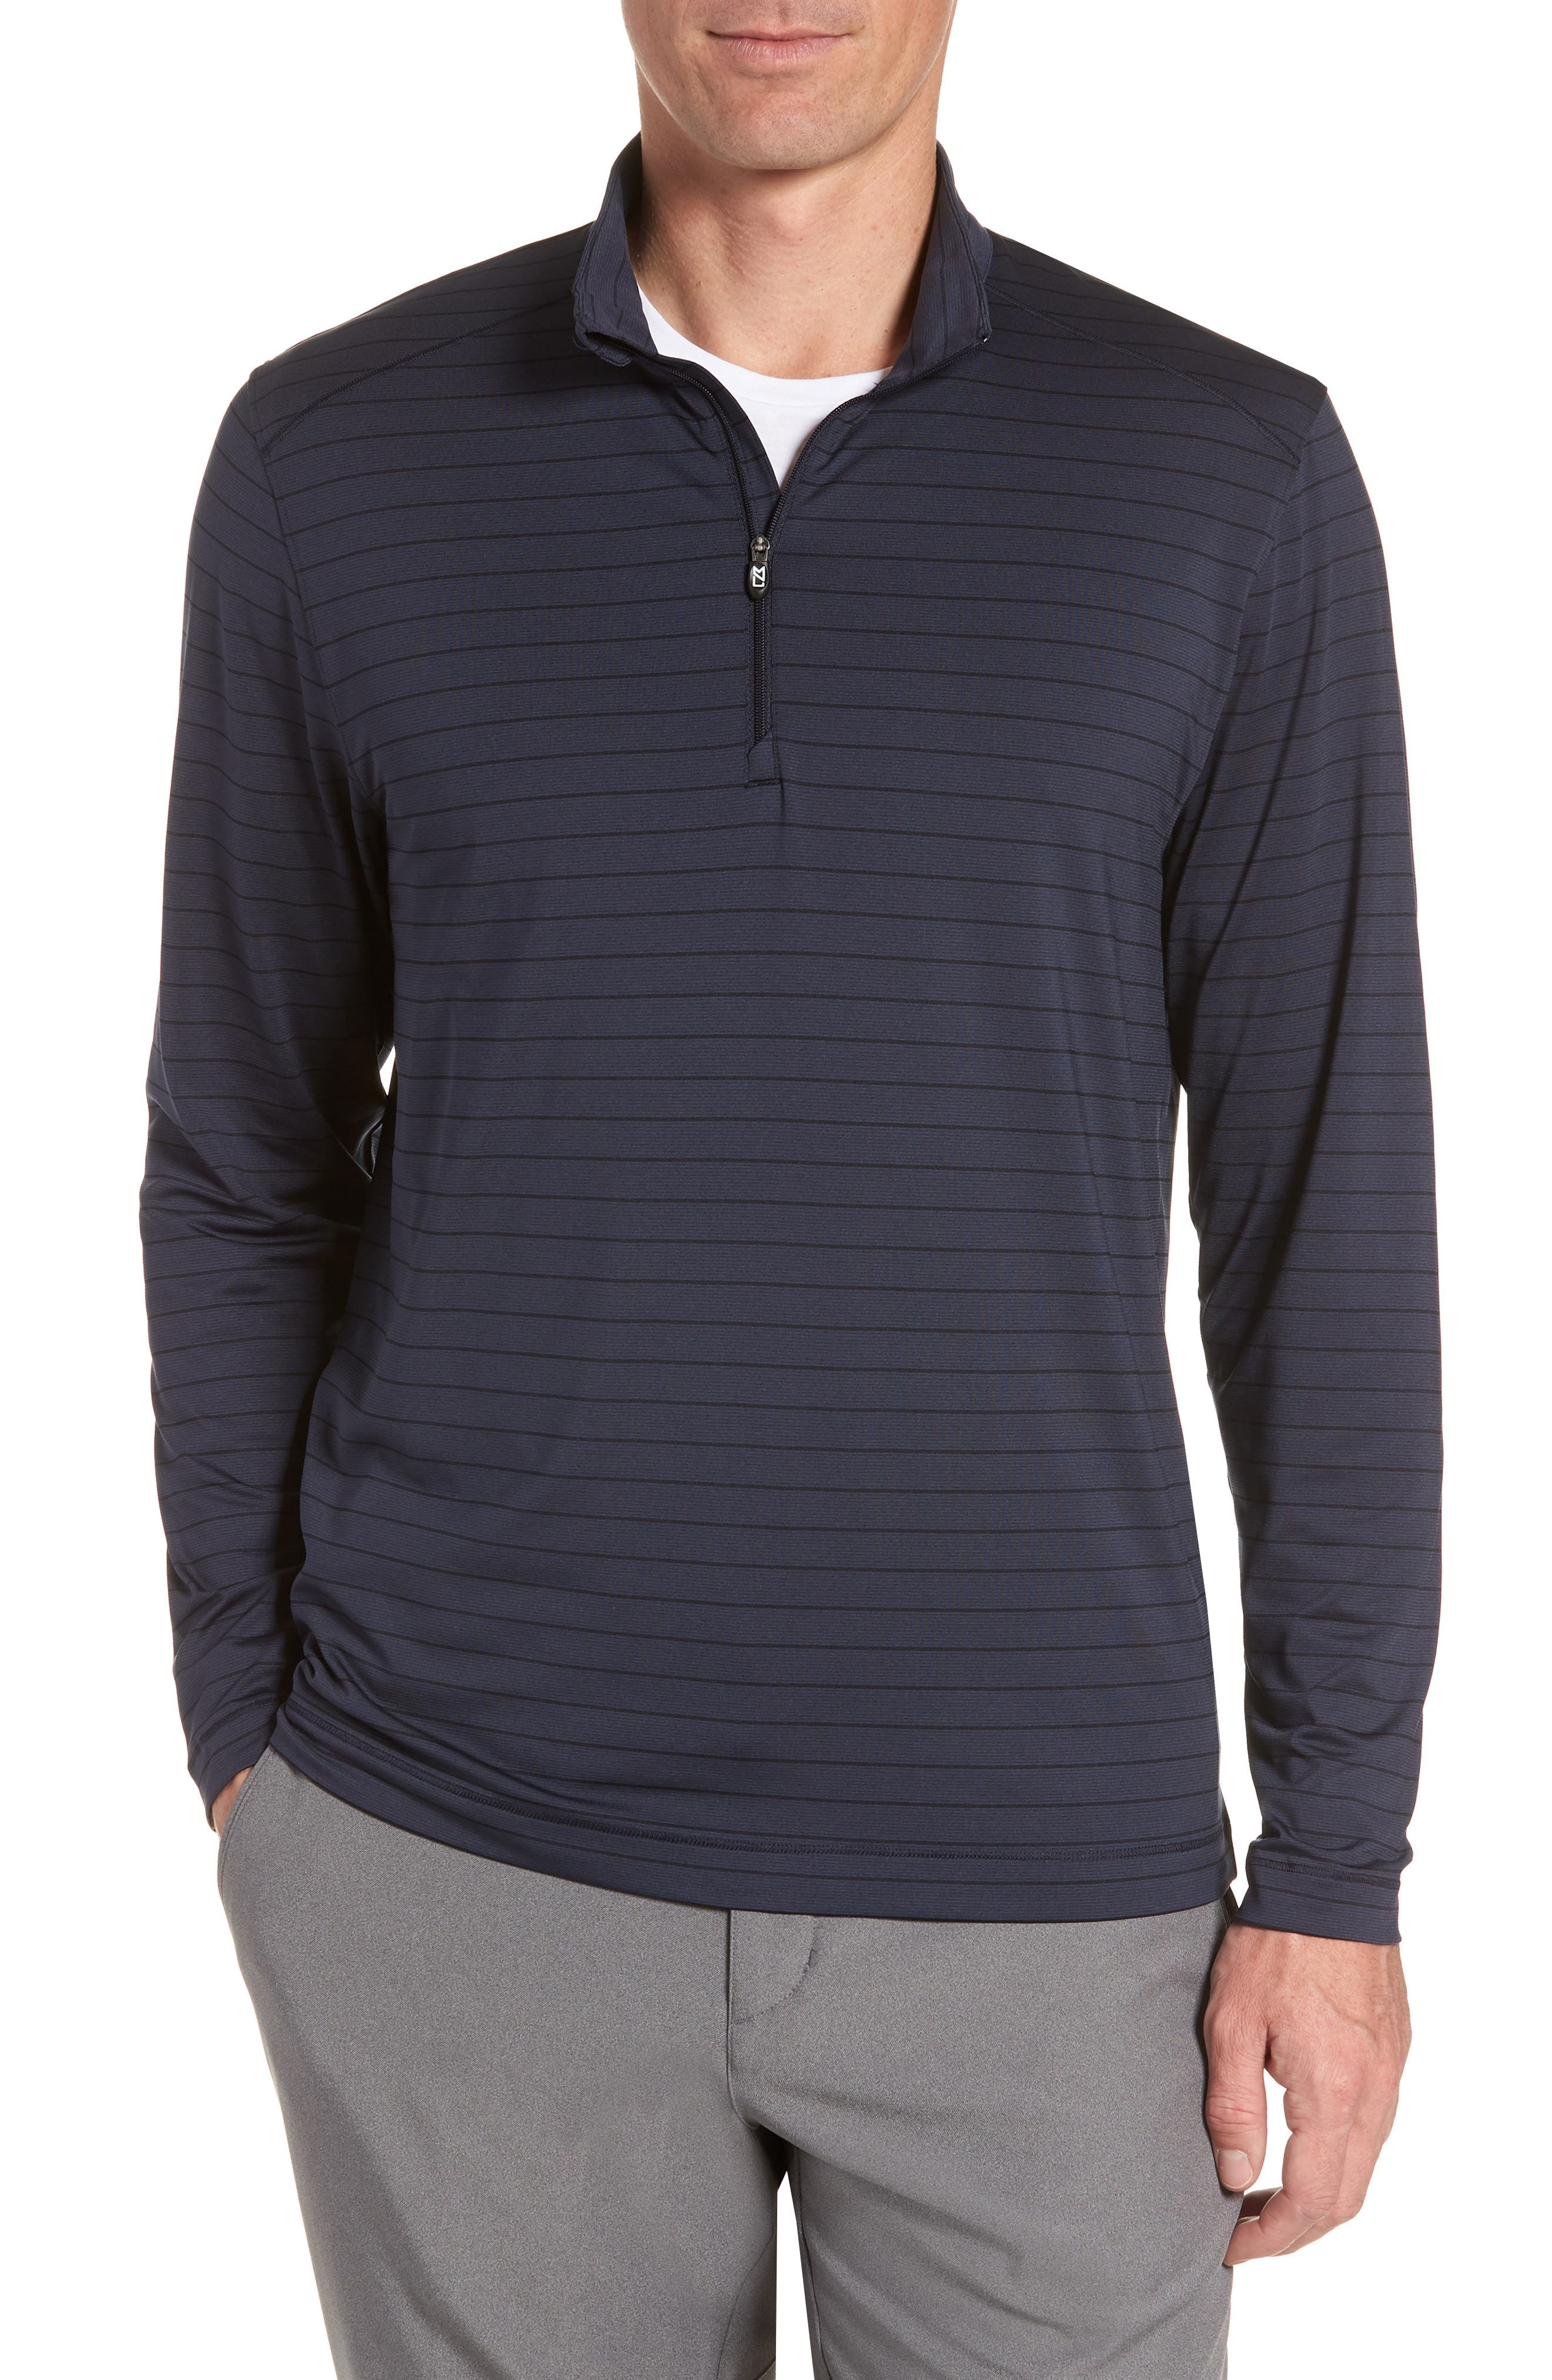 Holman Stripe Half Zip Pullover,                             Main thumbnail 1, color,                             LIBERTY NAVY HEATHER